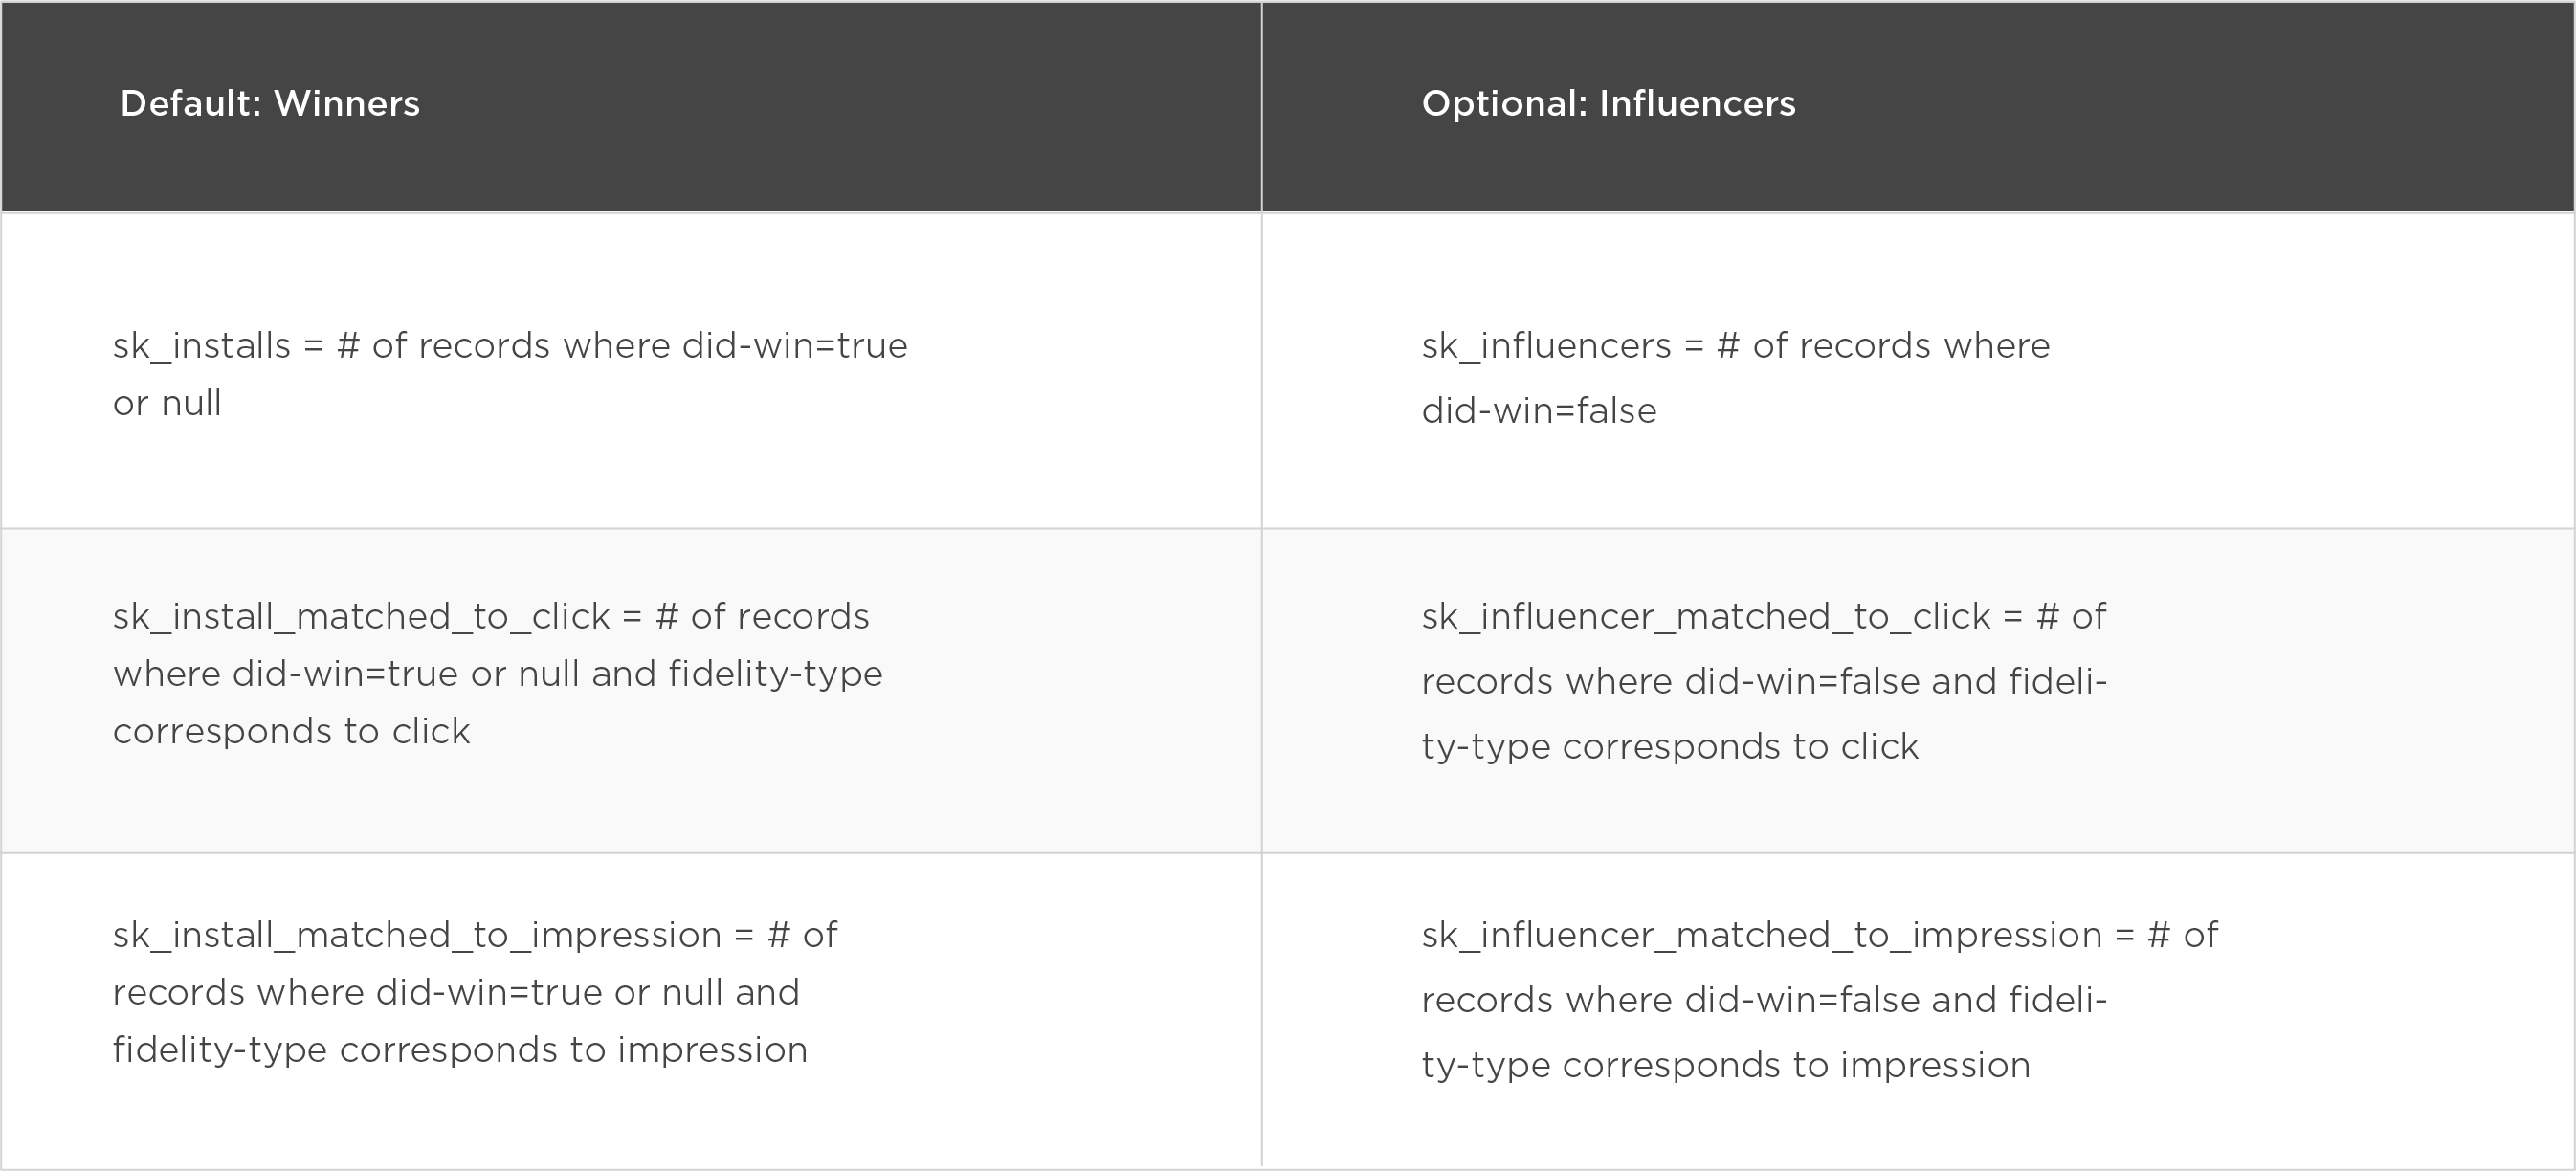 SKAdNetwork report influencers and winners